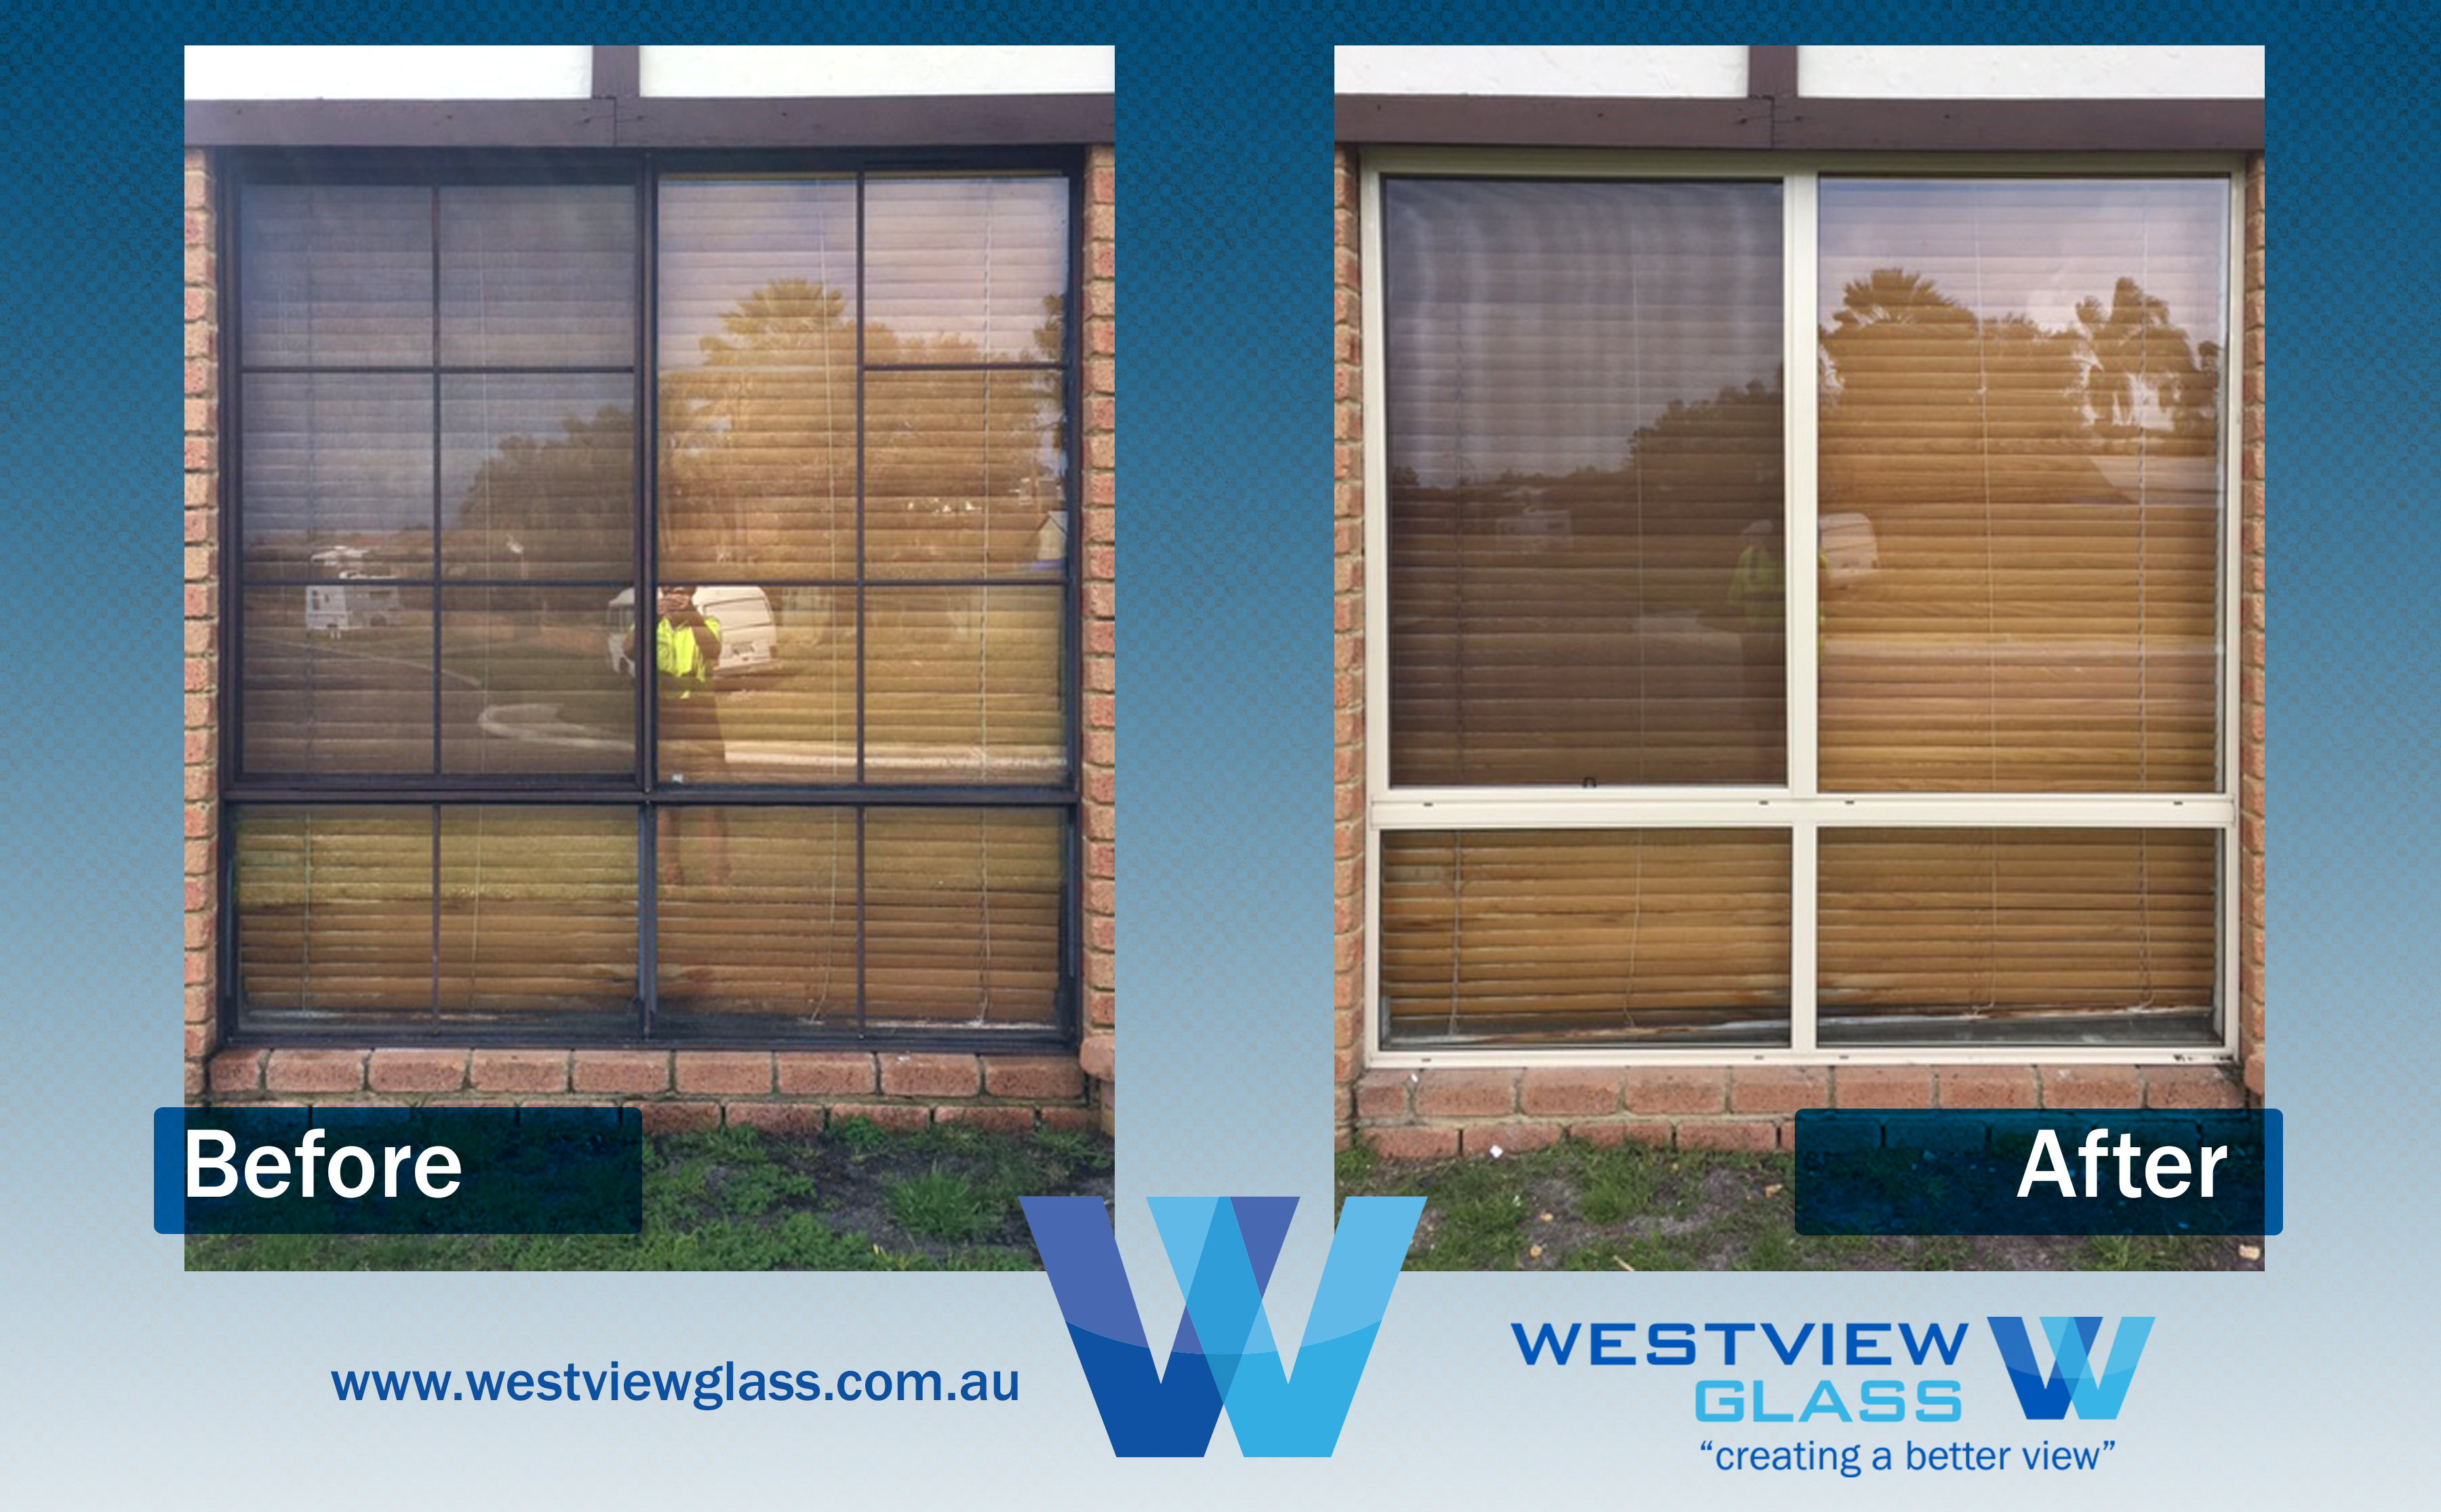 Sliding Window Bronw with Colonila Bars Magnolia Clear Glass - Aluminium Window Gallery – Before & After